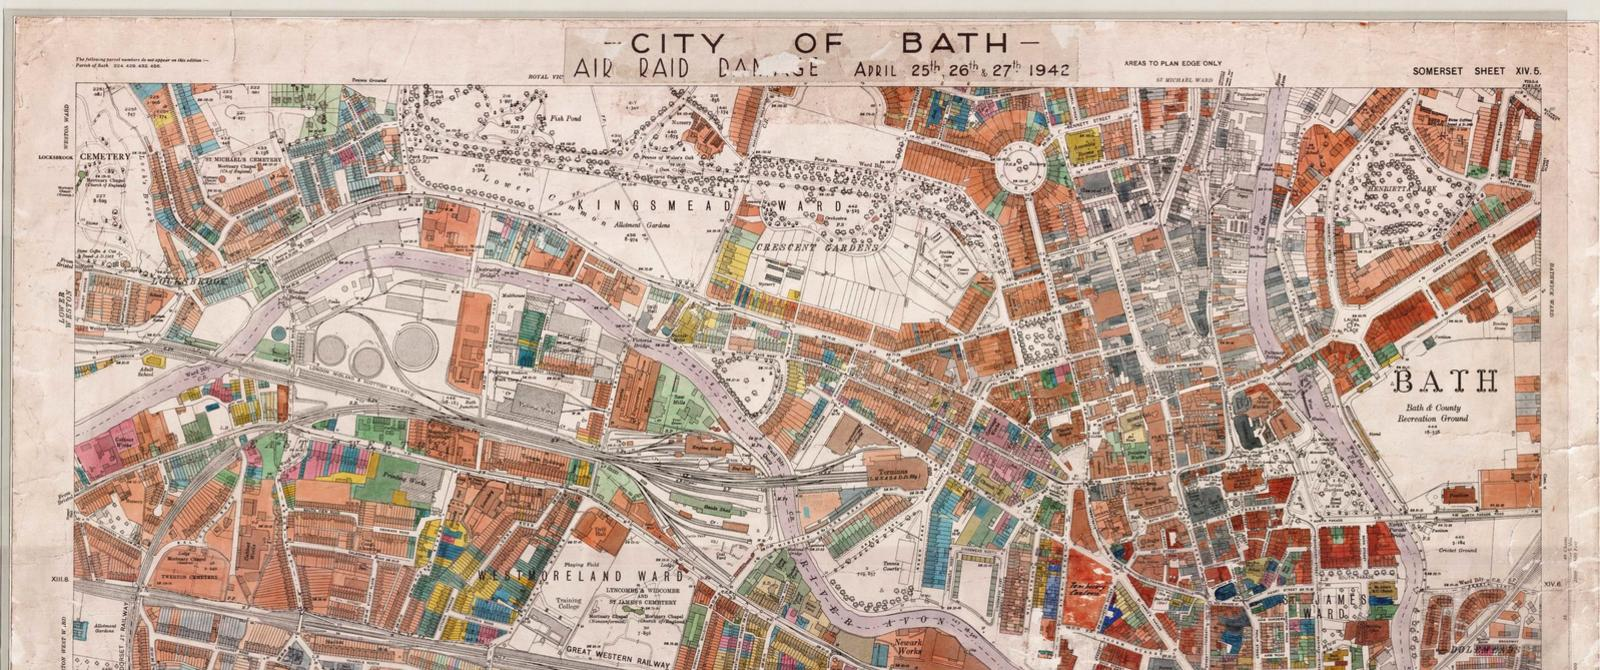 Map of damage from Bath Blitz of April 1942